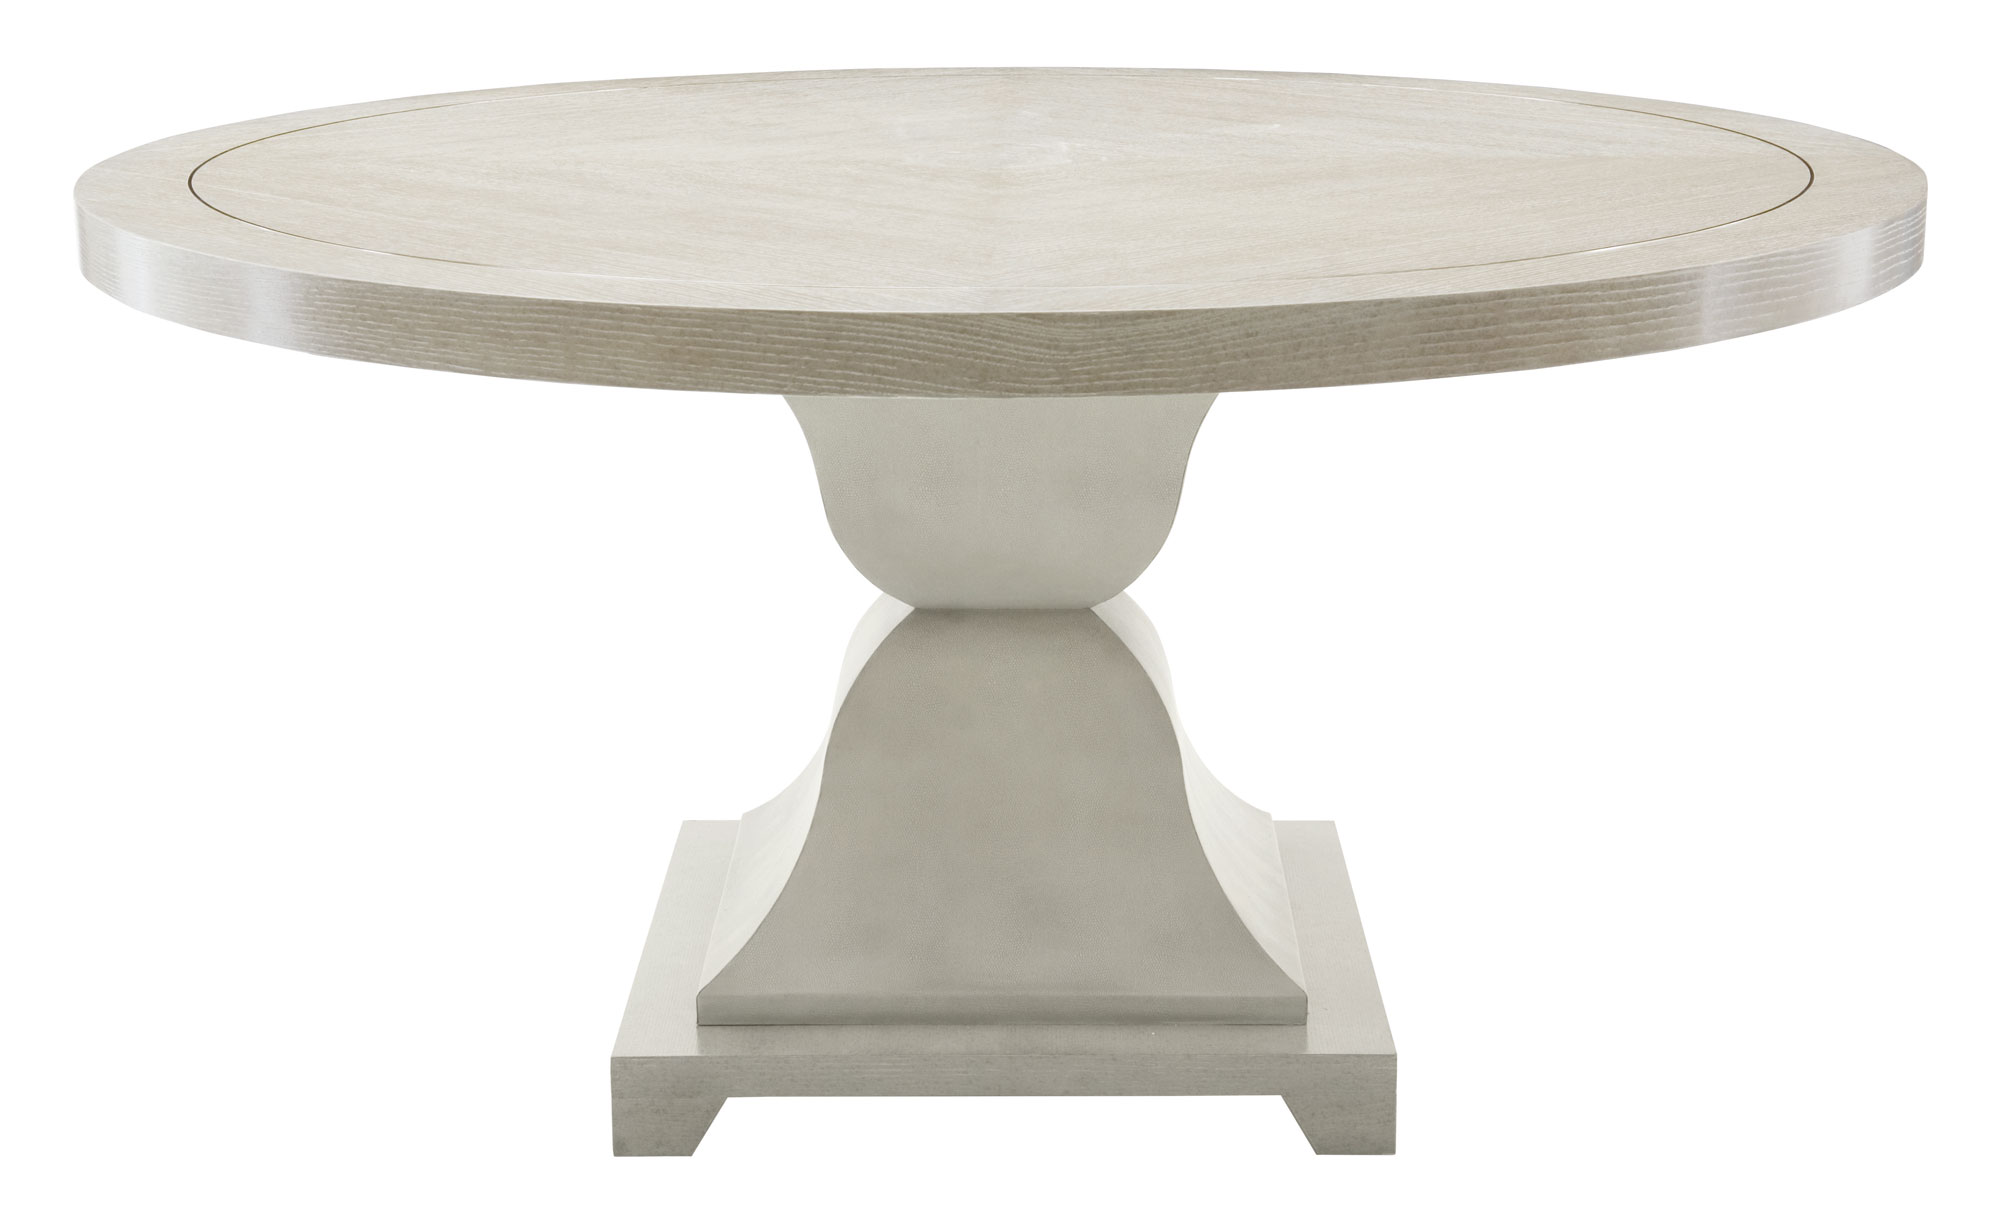 Oak Dining Room Furniture Round Dining Table Bernhardt